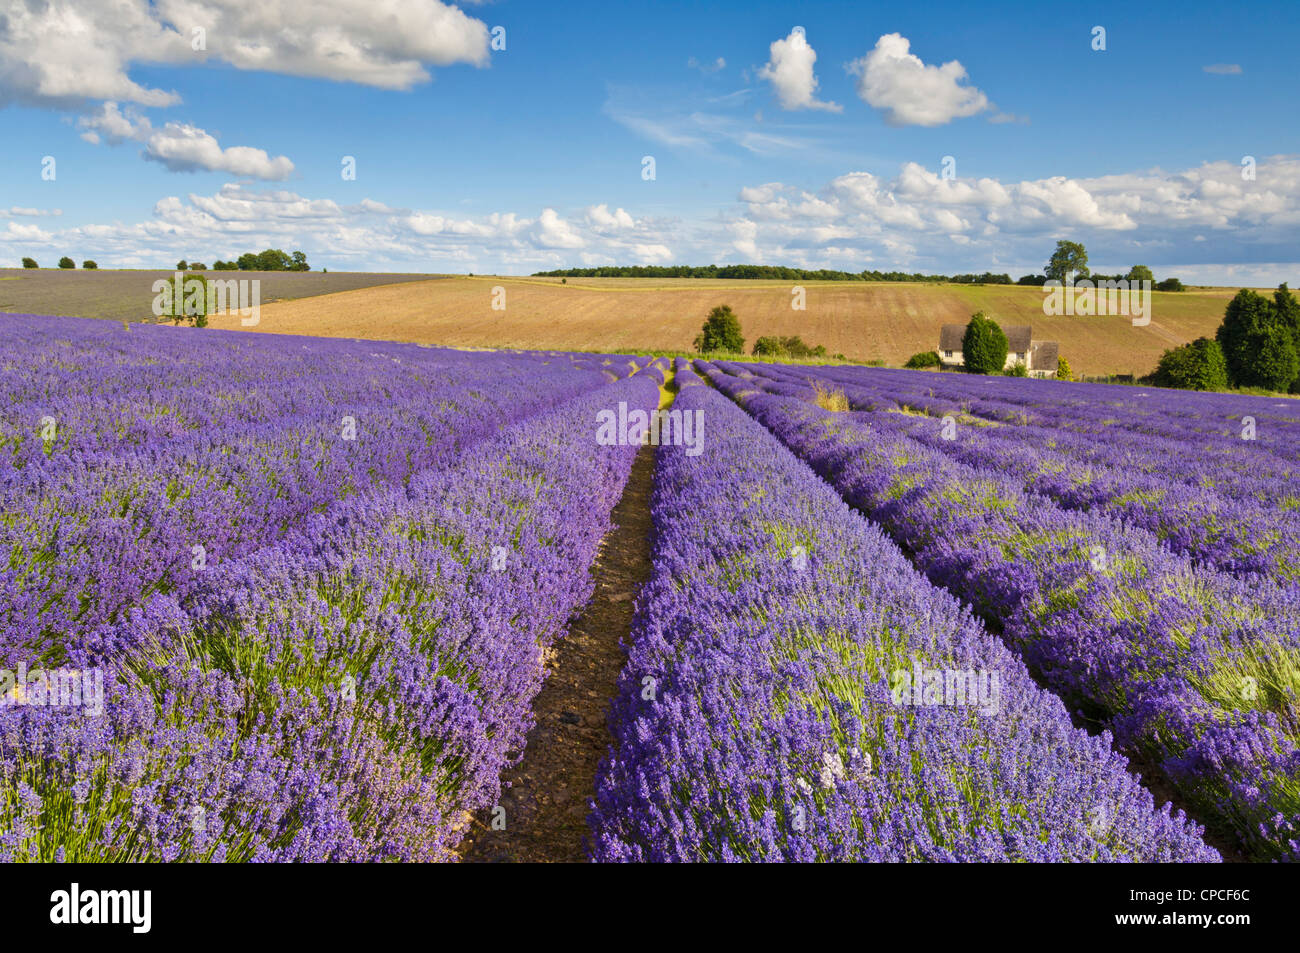 Rows of lavender plants at snowshill lavender farm cotswolds england uk gb eu europe - Stock Image